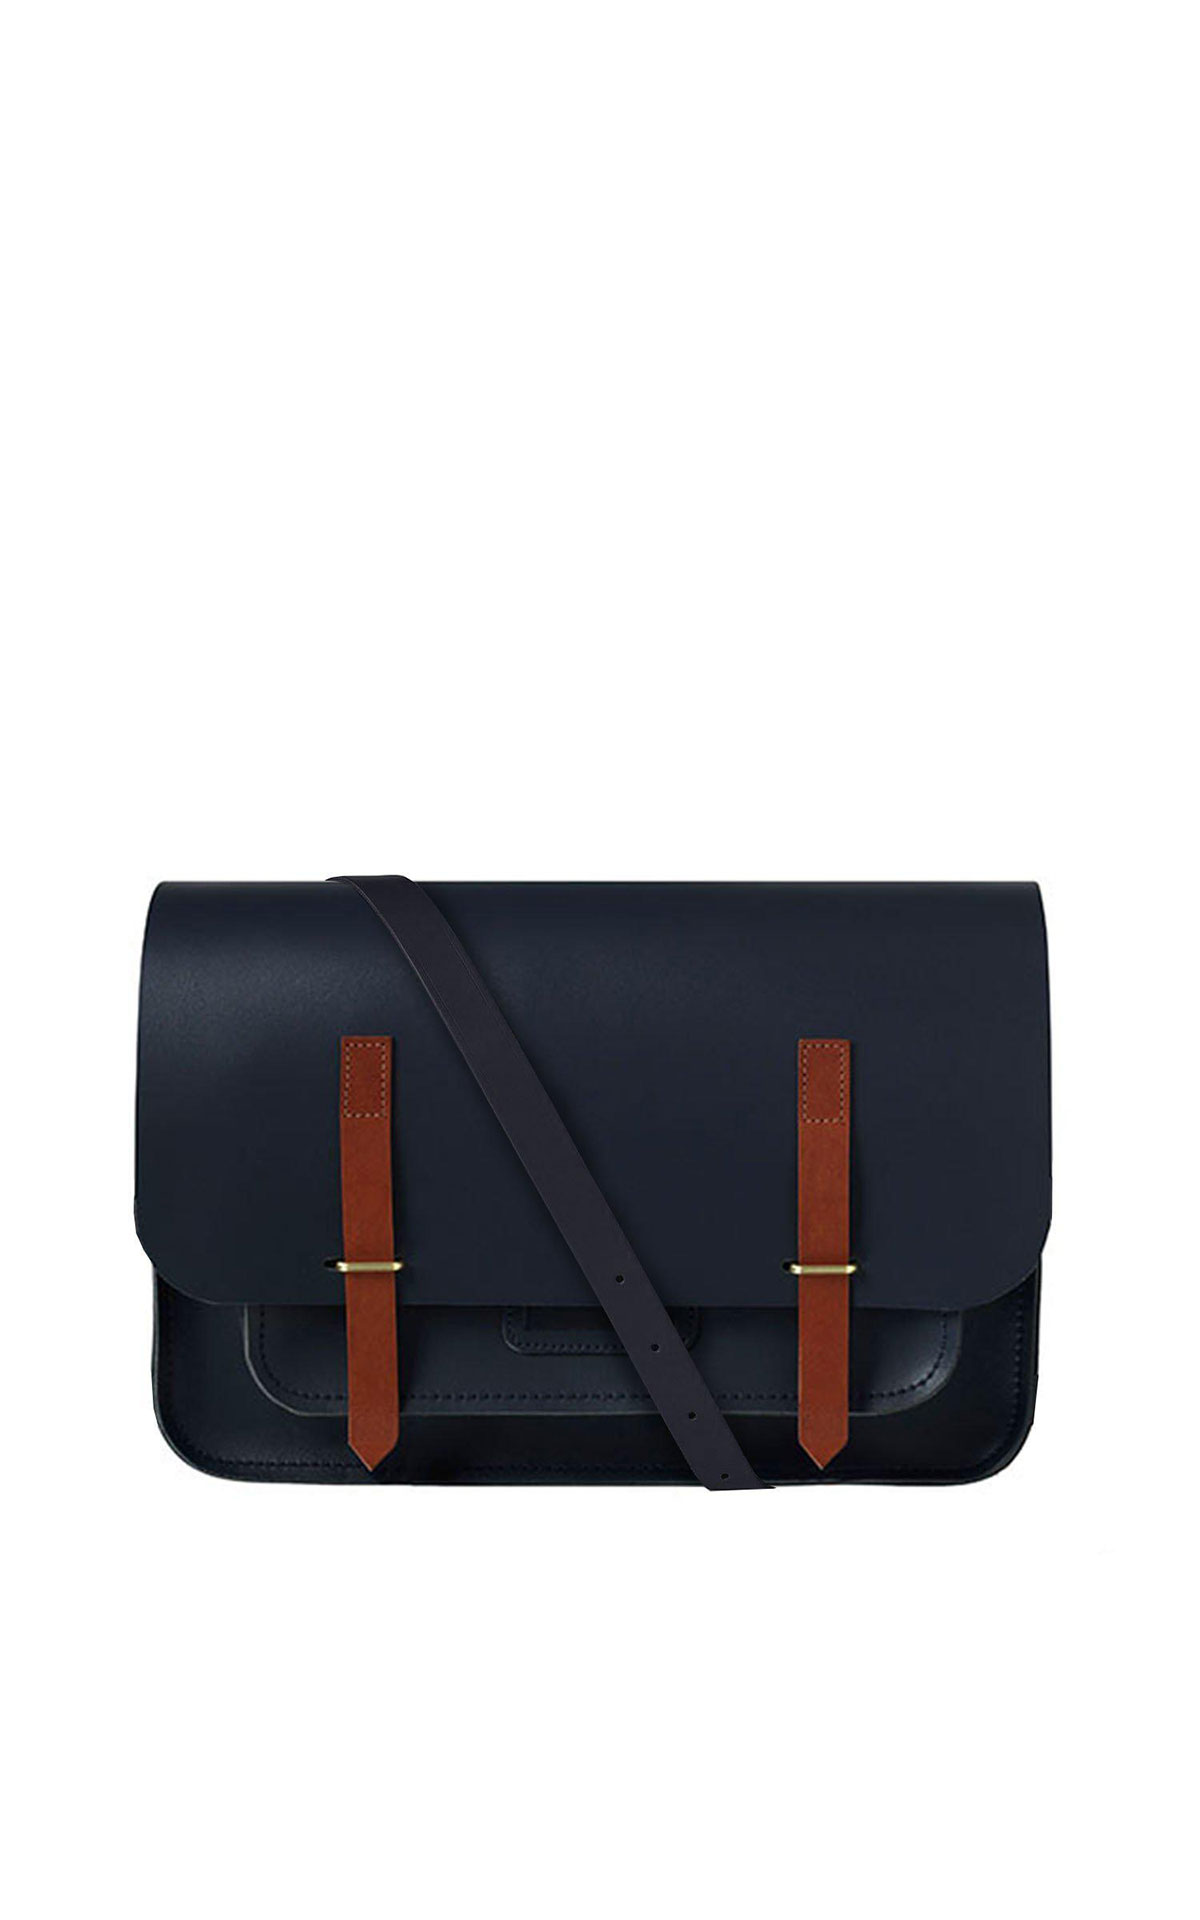 The Cambridge Satchel Company Messenger bag navy & tan from Bicester Village